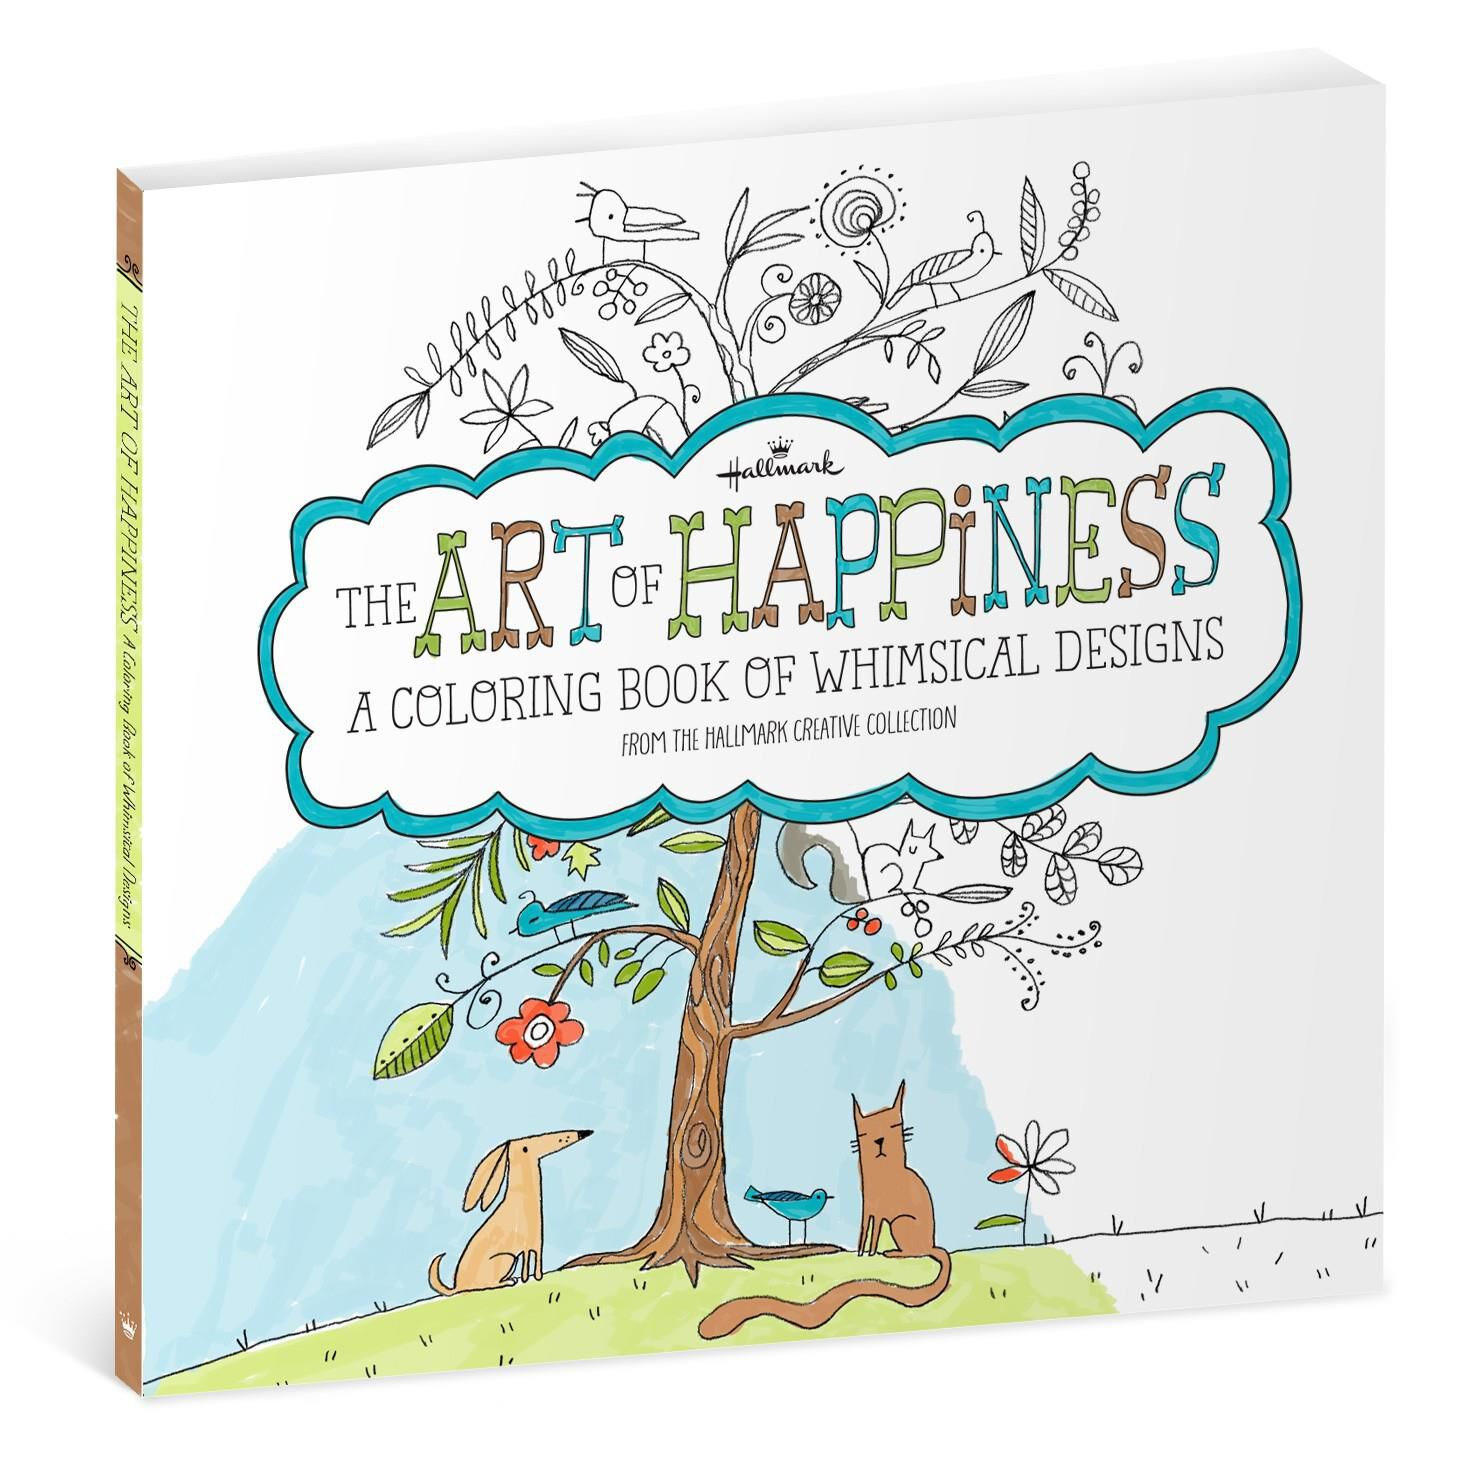 The art of happiness whimsical designs coloring book for adults coloring books hallmark